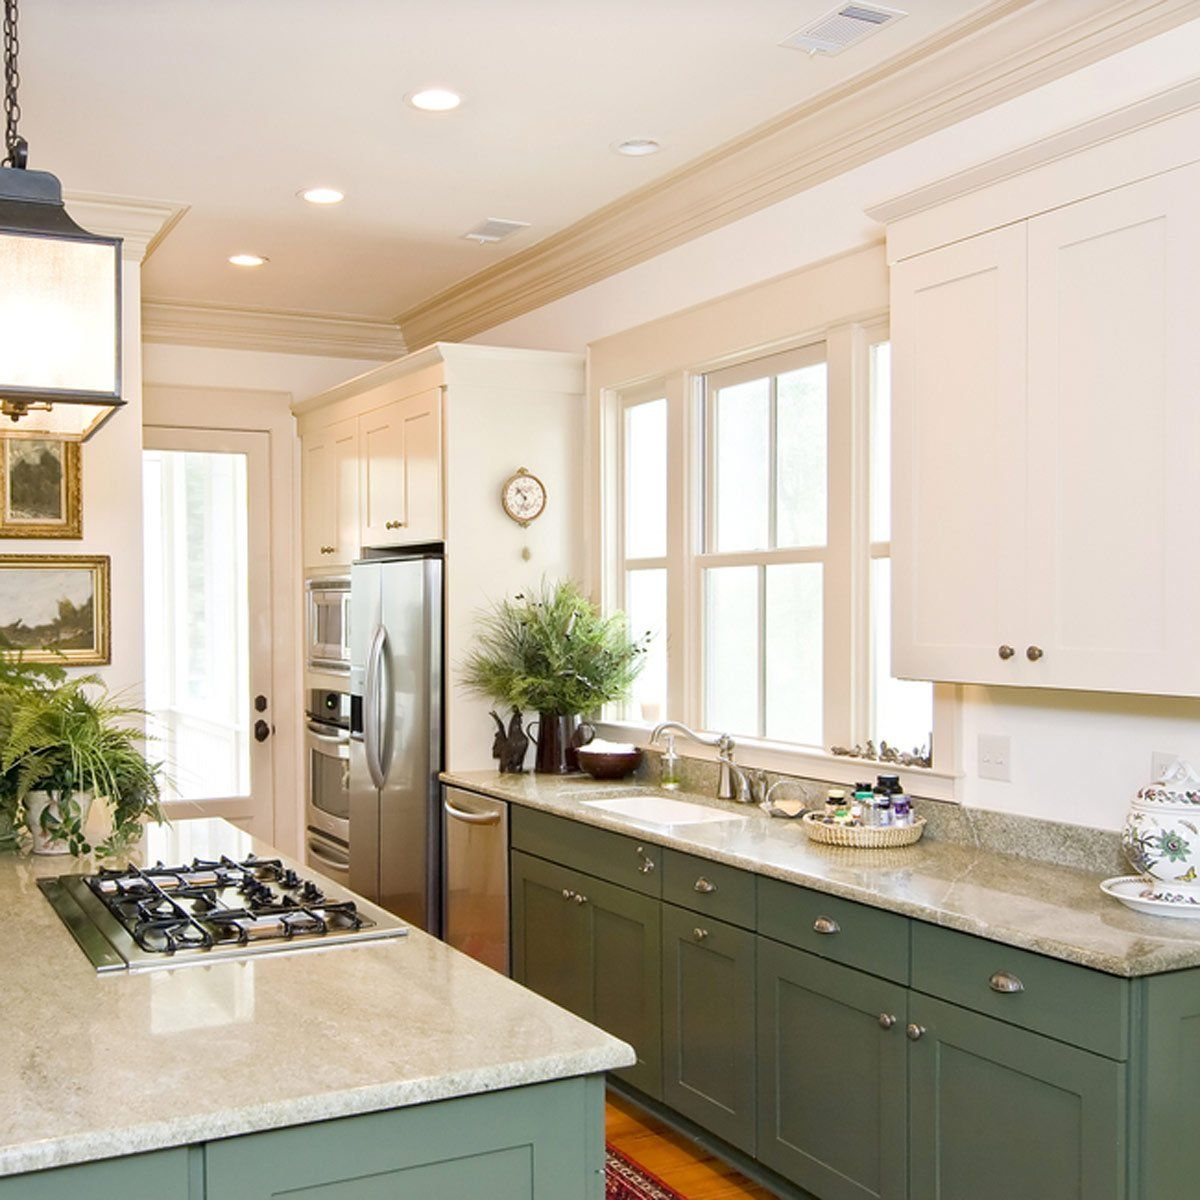 10 new trends in wood trim in 2020 with images kitchen cabinets trim wood trim interior on kitchen cabinets trim id=87262